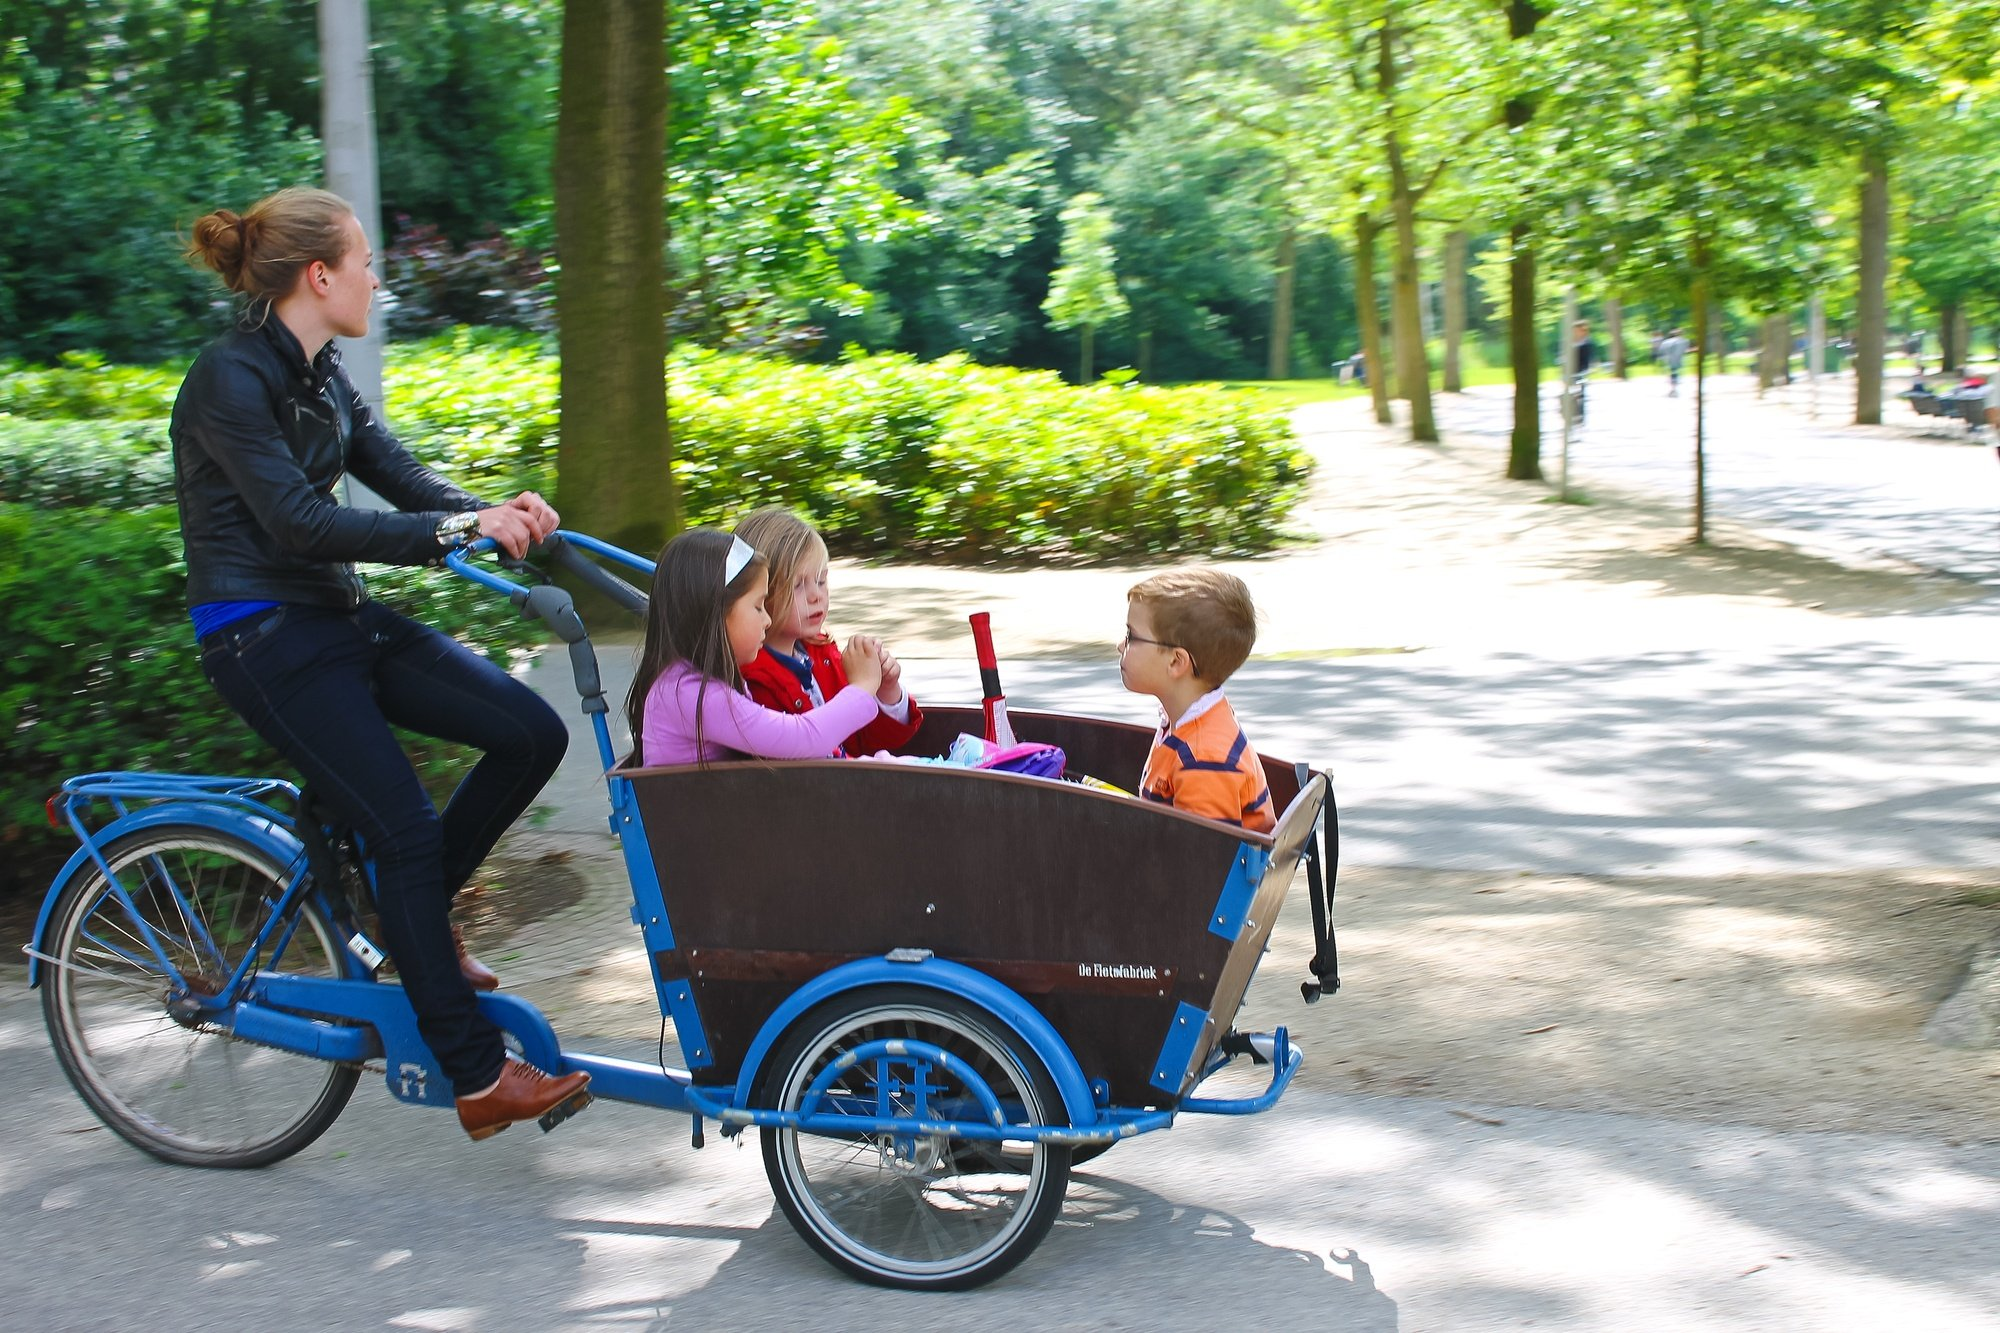 Cargo bicycle in the Netherlands